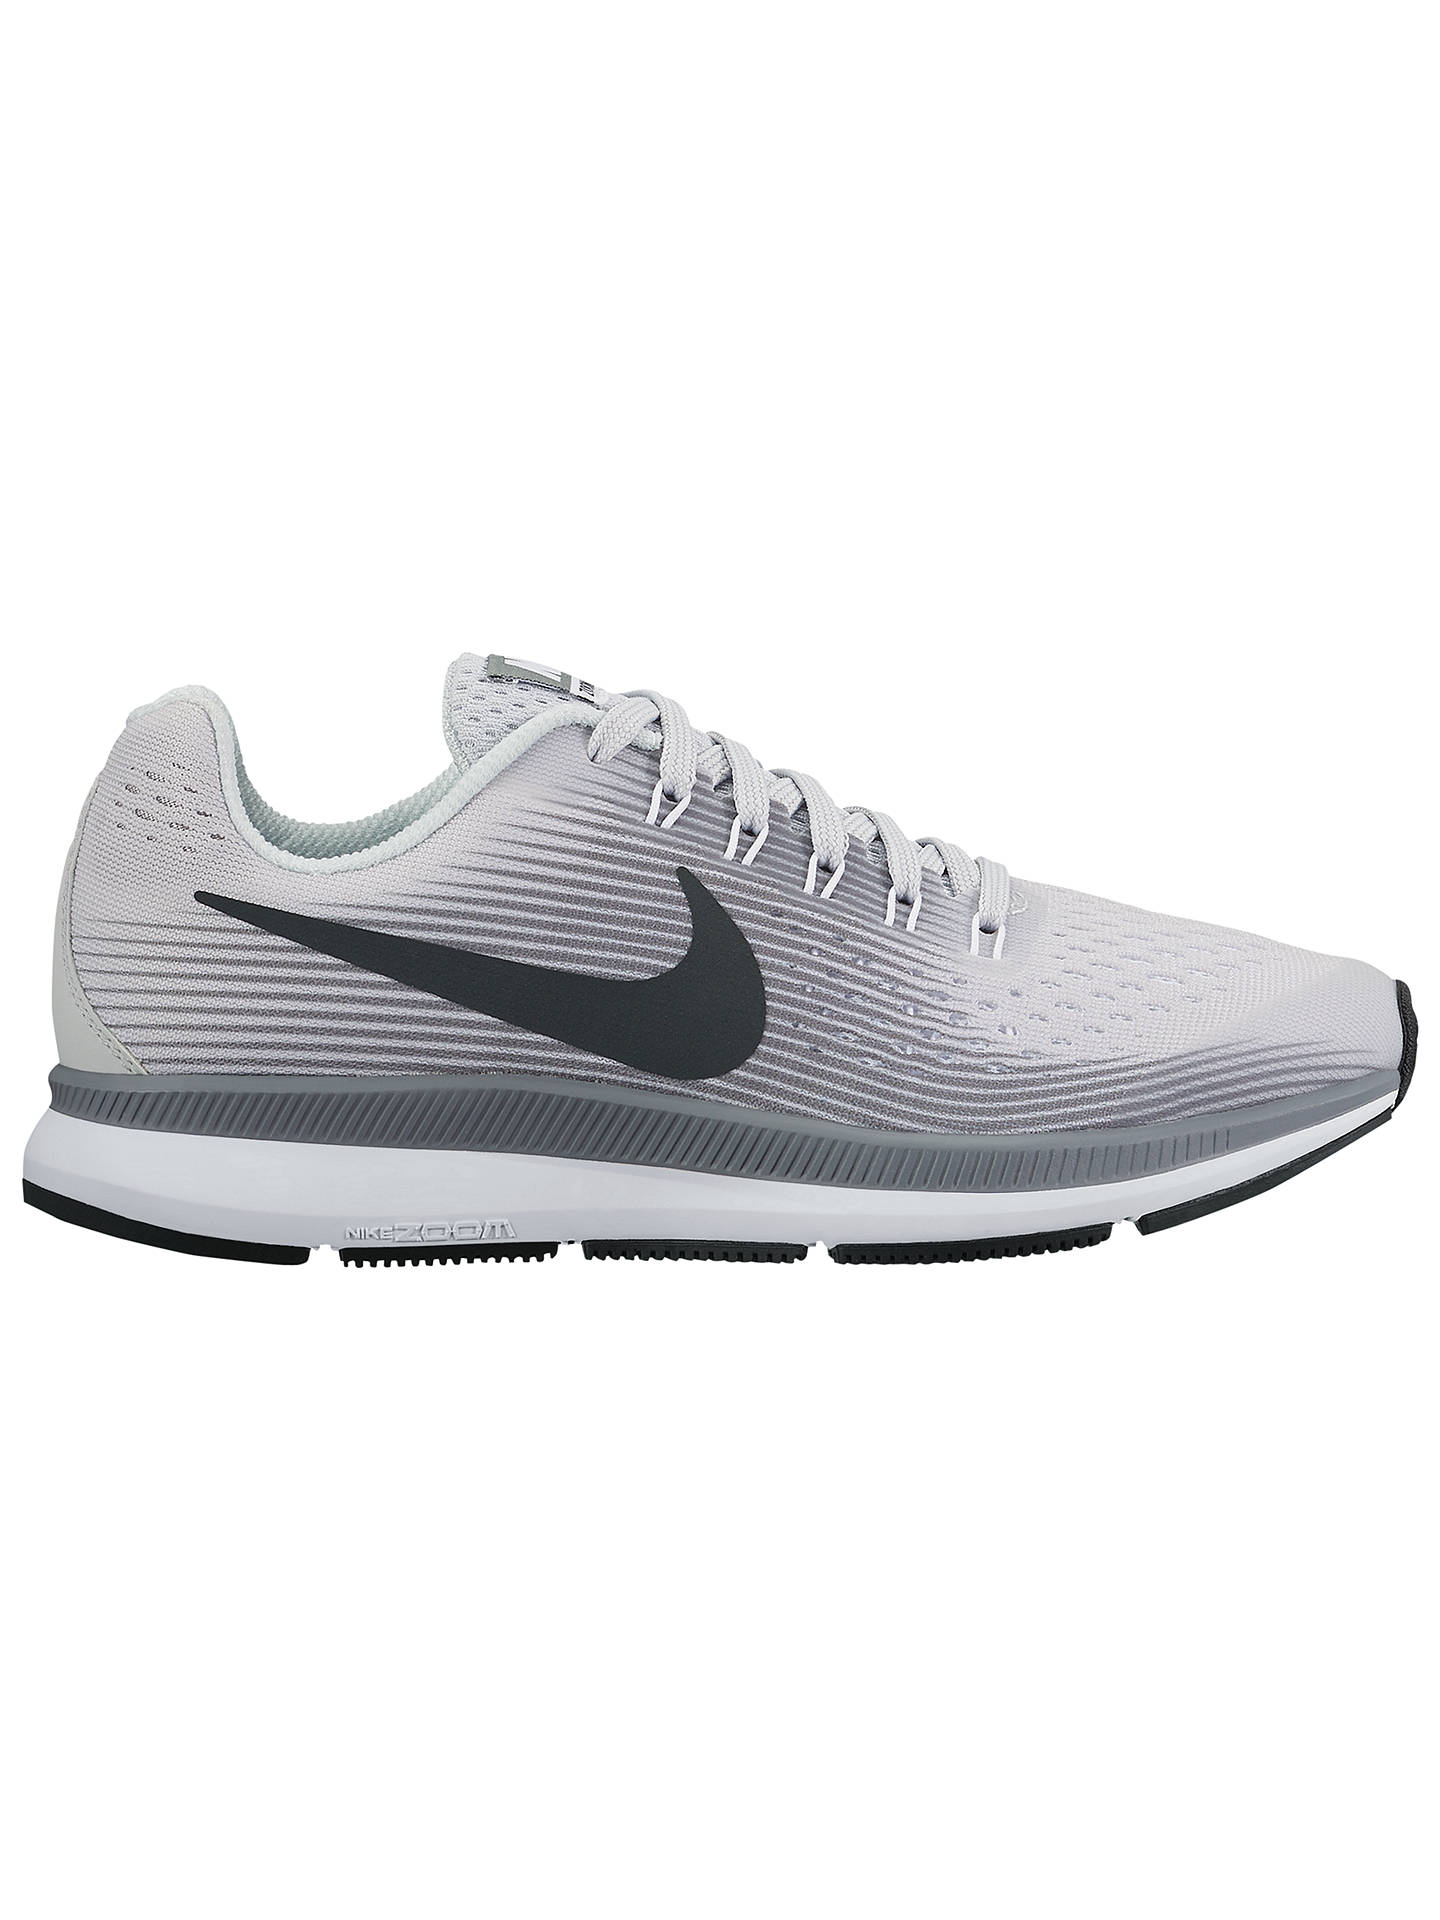 best sneakers af780 45f9f Nike Children's Air Zoom Pegasus 34 (GS) Running Shoes, Grey ...